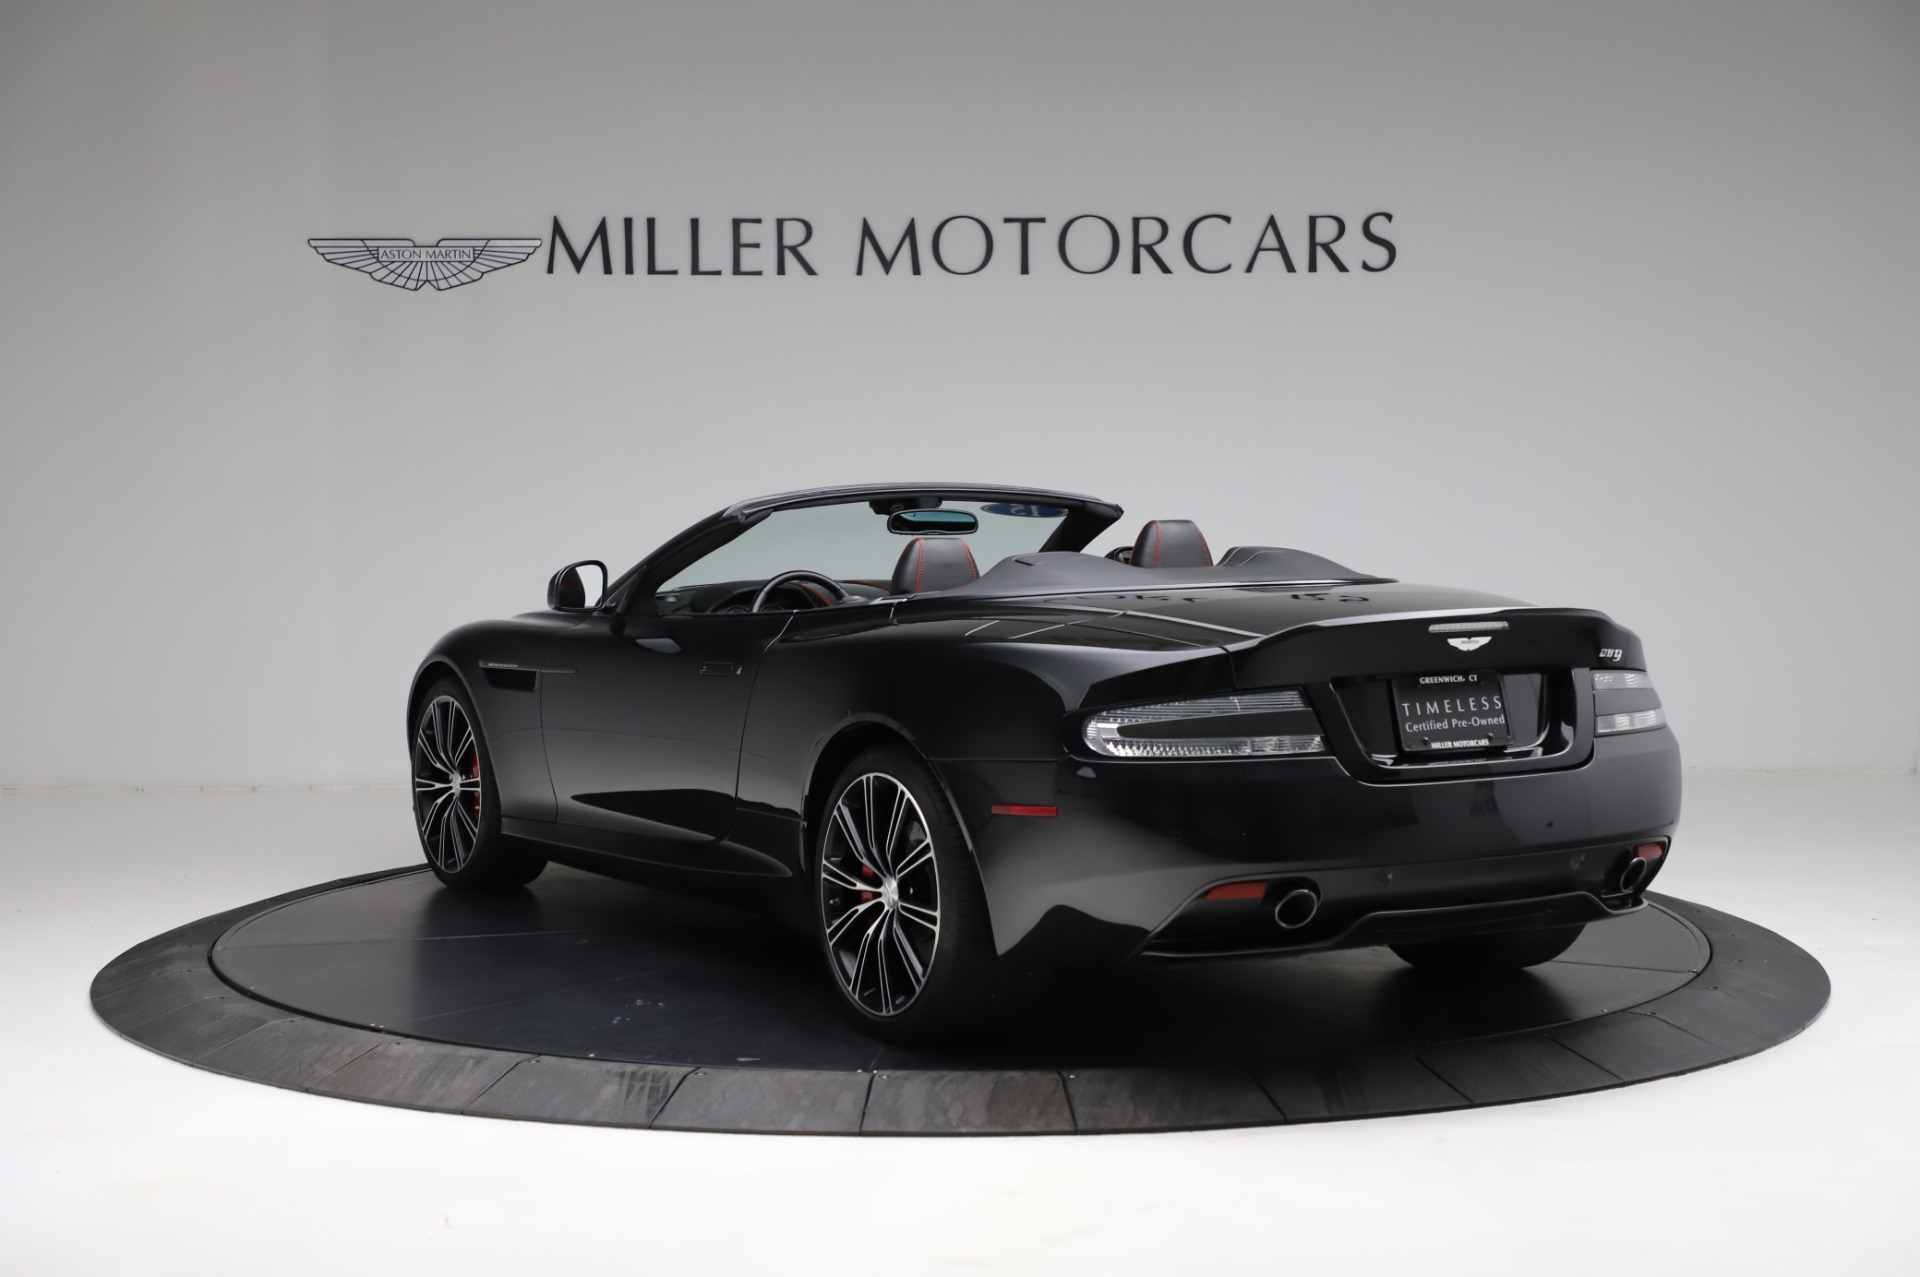 Used 2015 Aston Martin DB9 Convertible For Sale In Greenwich, CT 1919_p4